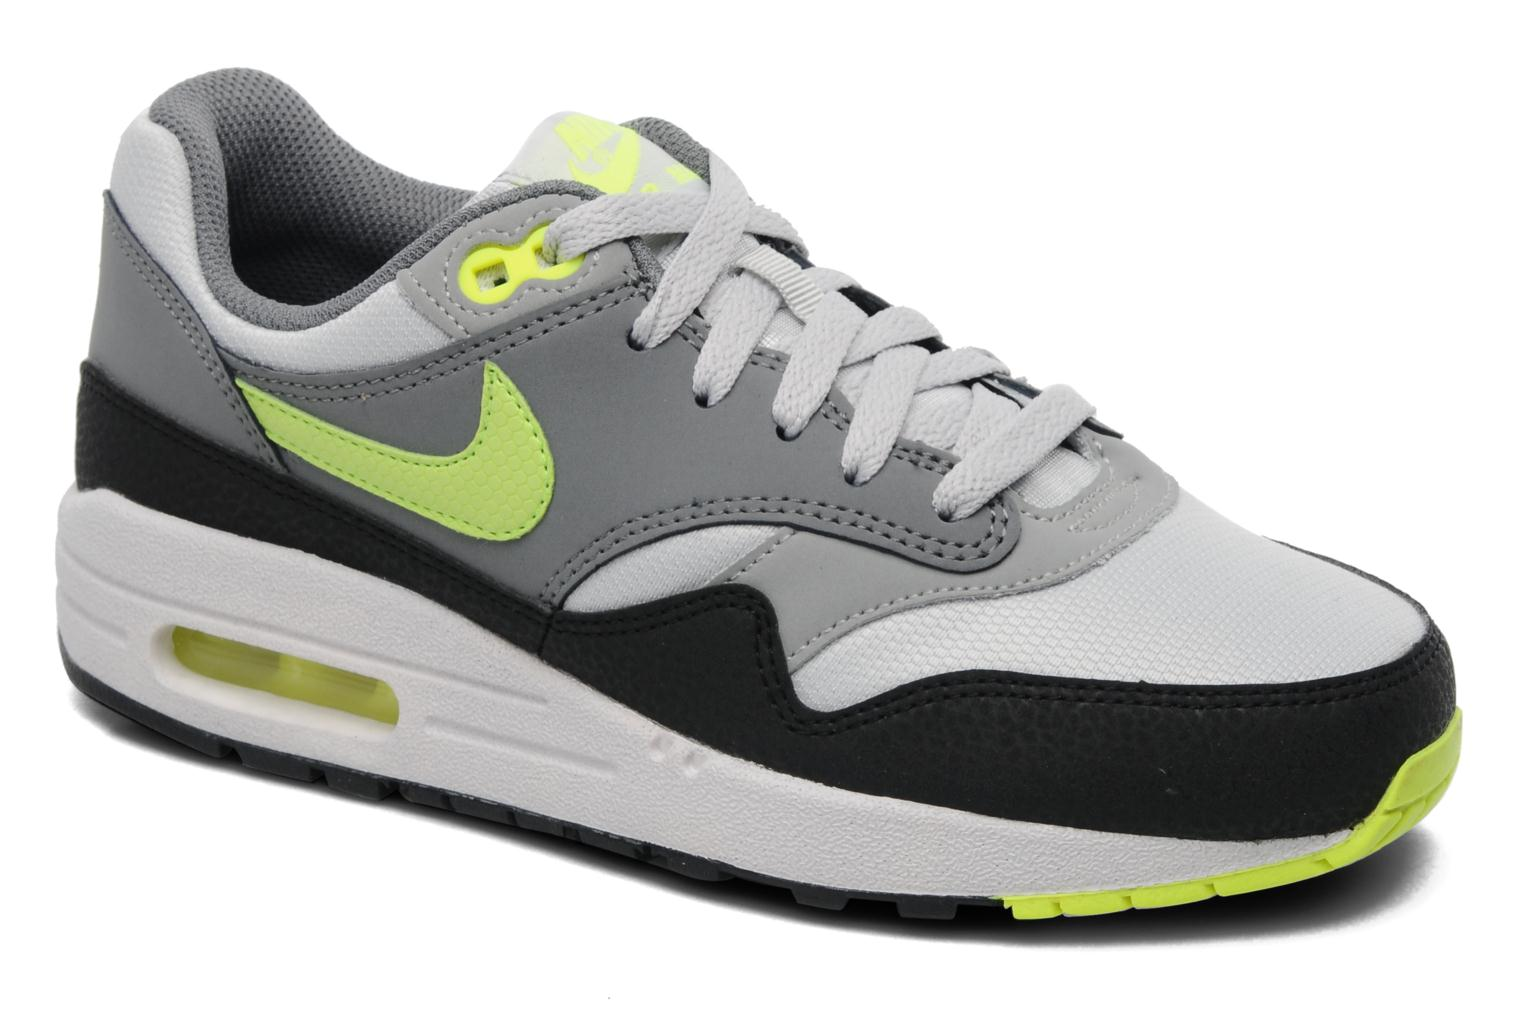 Nike WLF TTL Orng-PHT BL-CL Gry, Chaussures de Sport Garçon, Gris-Gris (WLF Gry/TTL Orng-PHT BL-Cl Gry), 29 1/2 EU